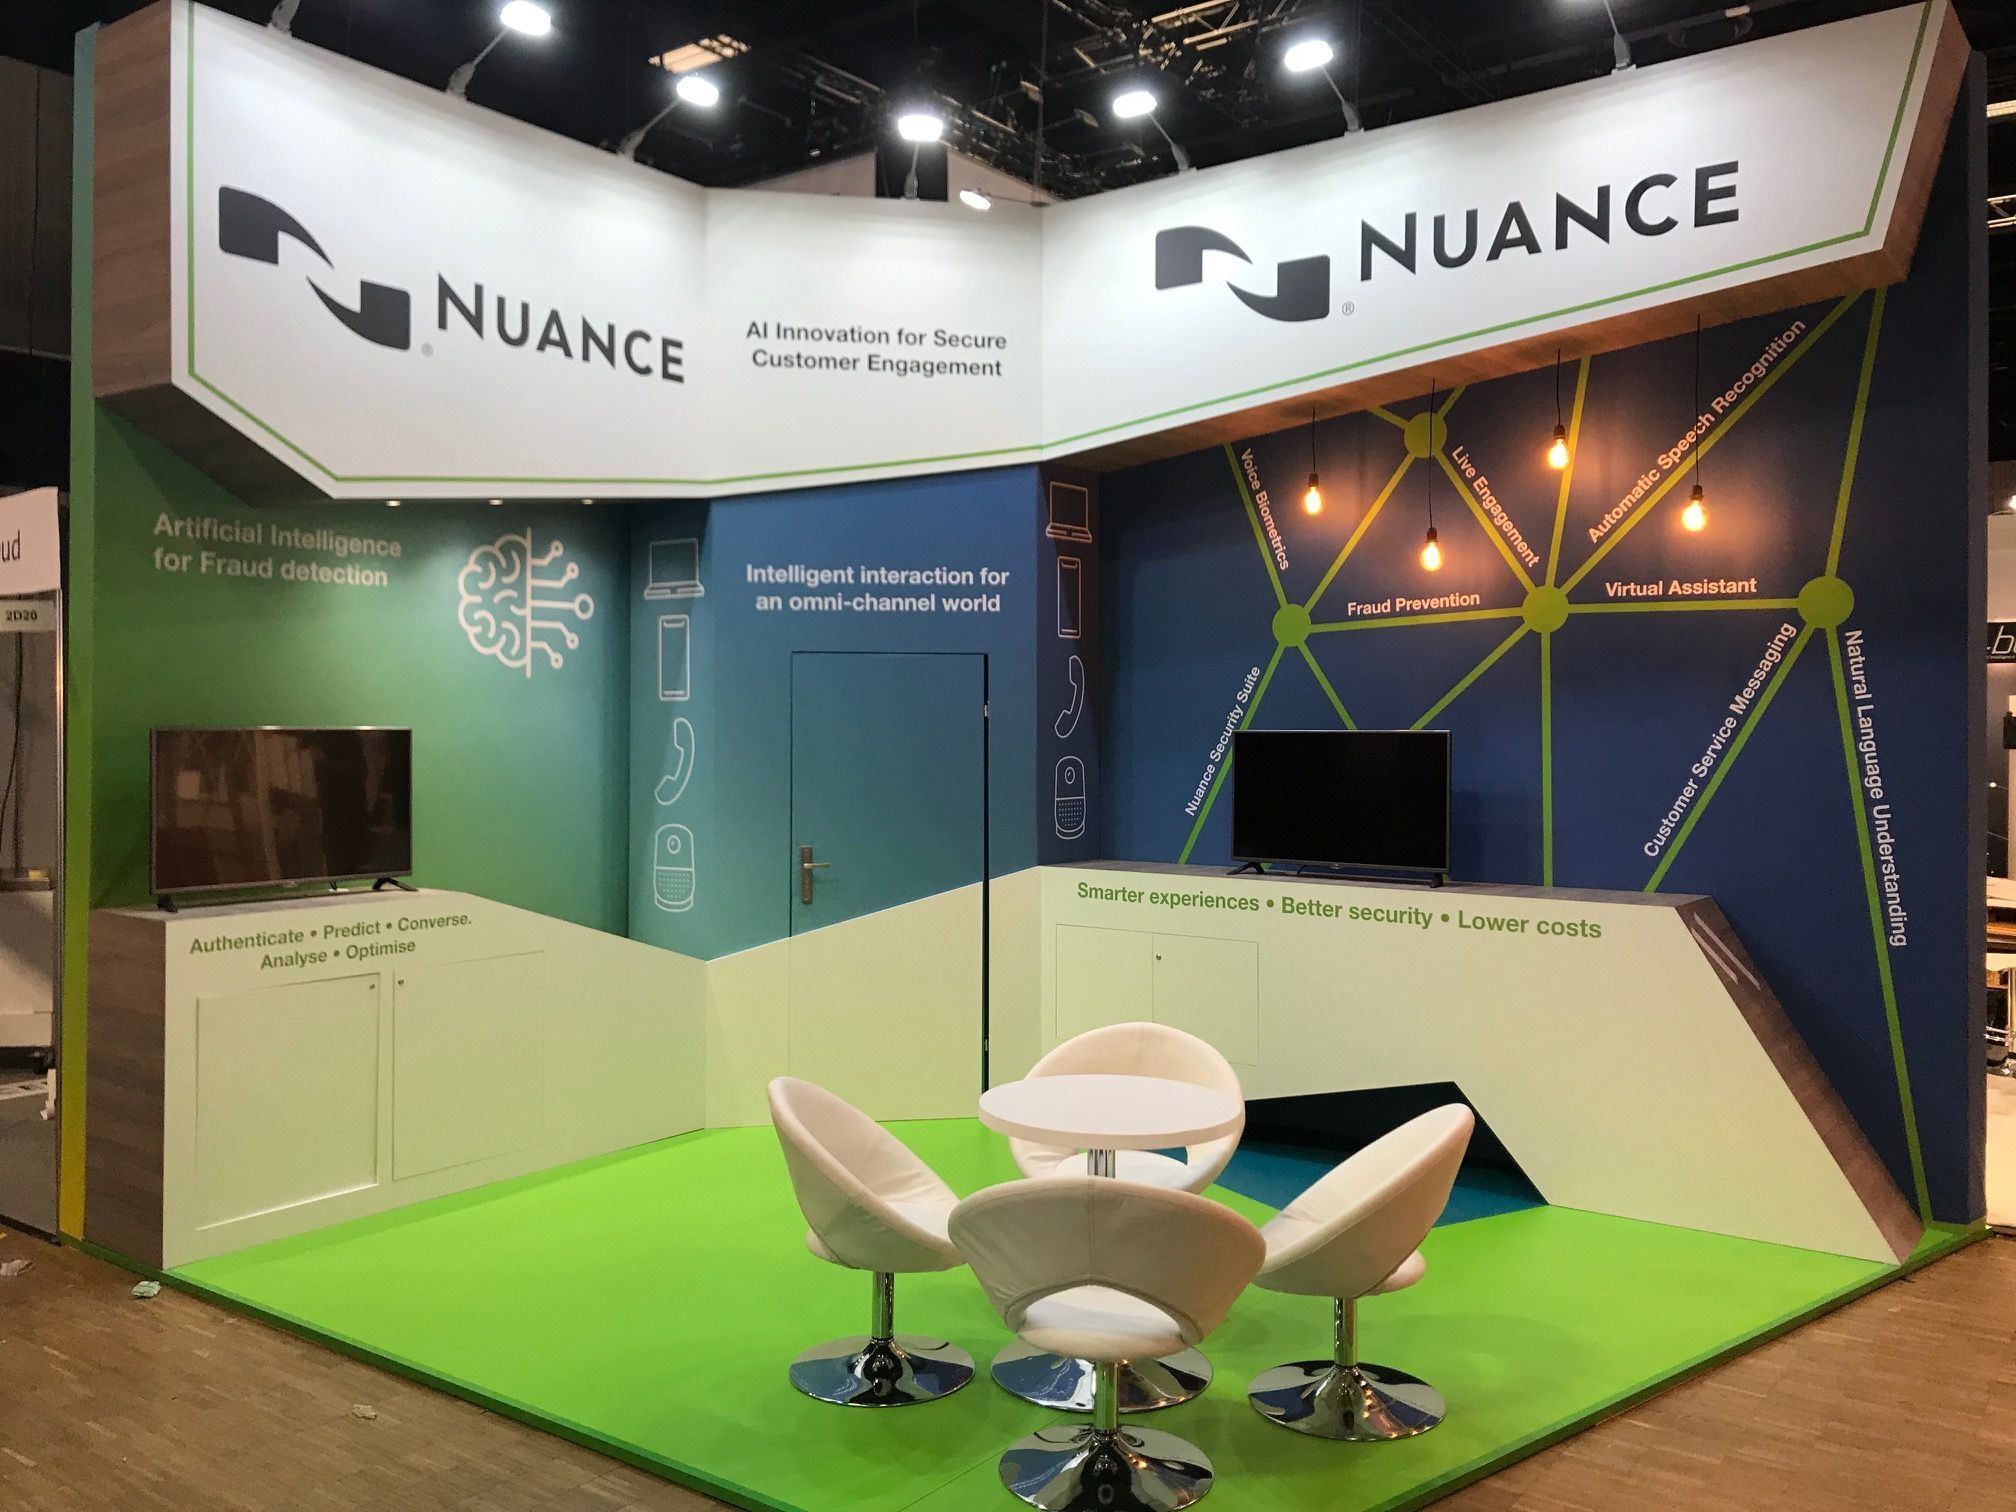 Nuance Ccw 2019 Exhibition Booth Design Booth Design Design